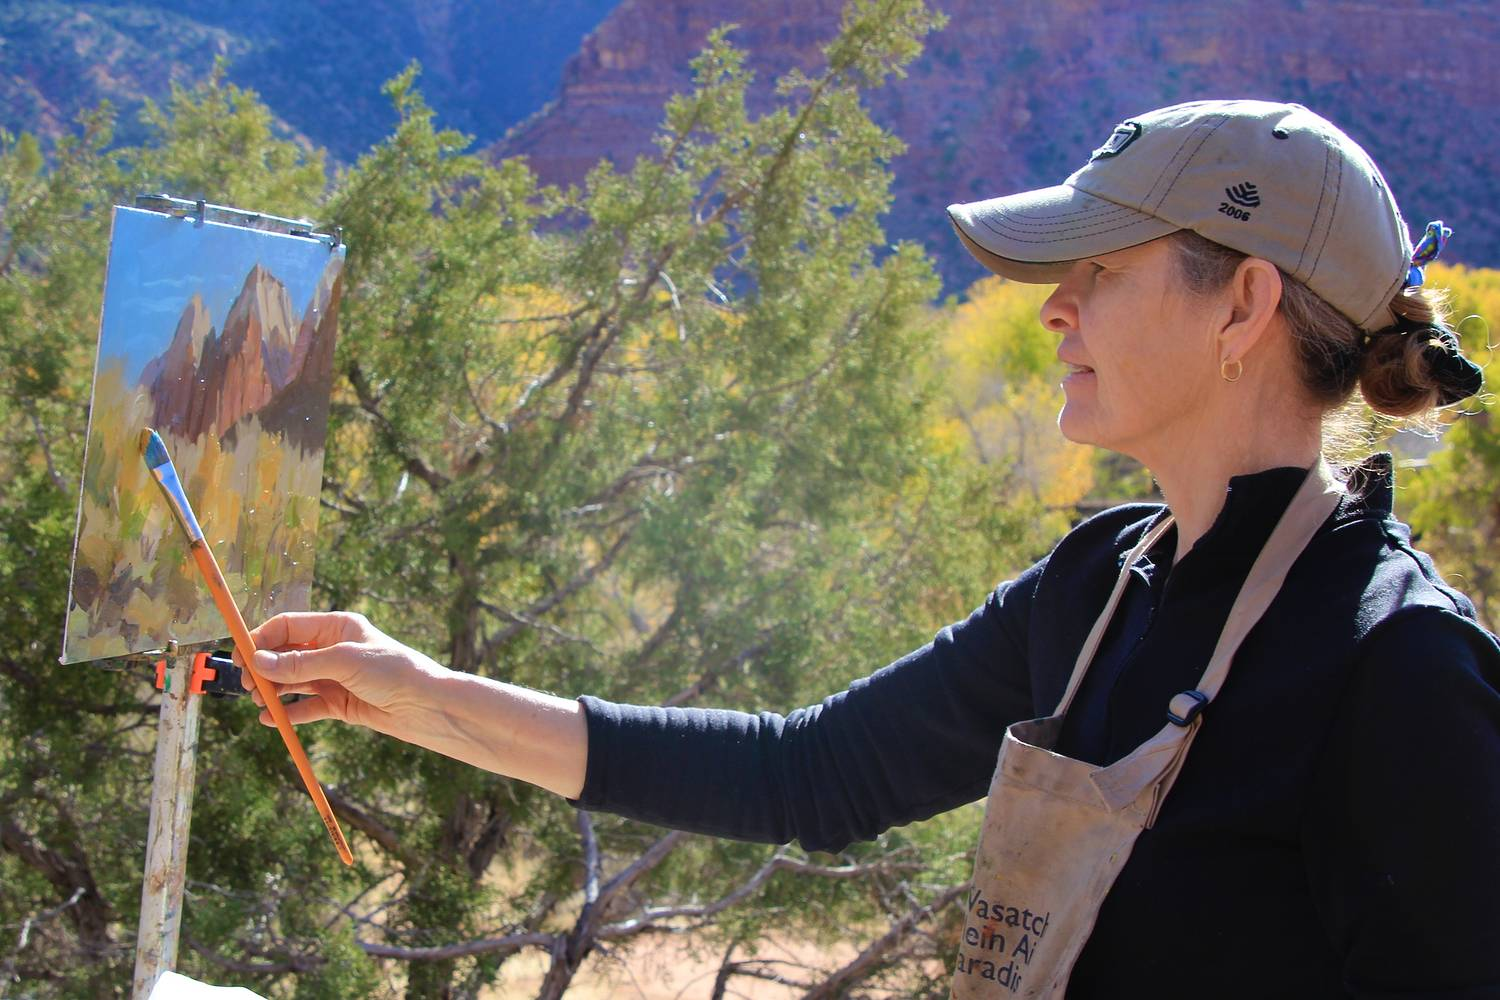 Zion's Park Plein air Paint out and competition 2013 by Susette Gertsch